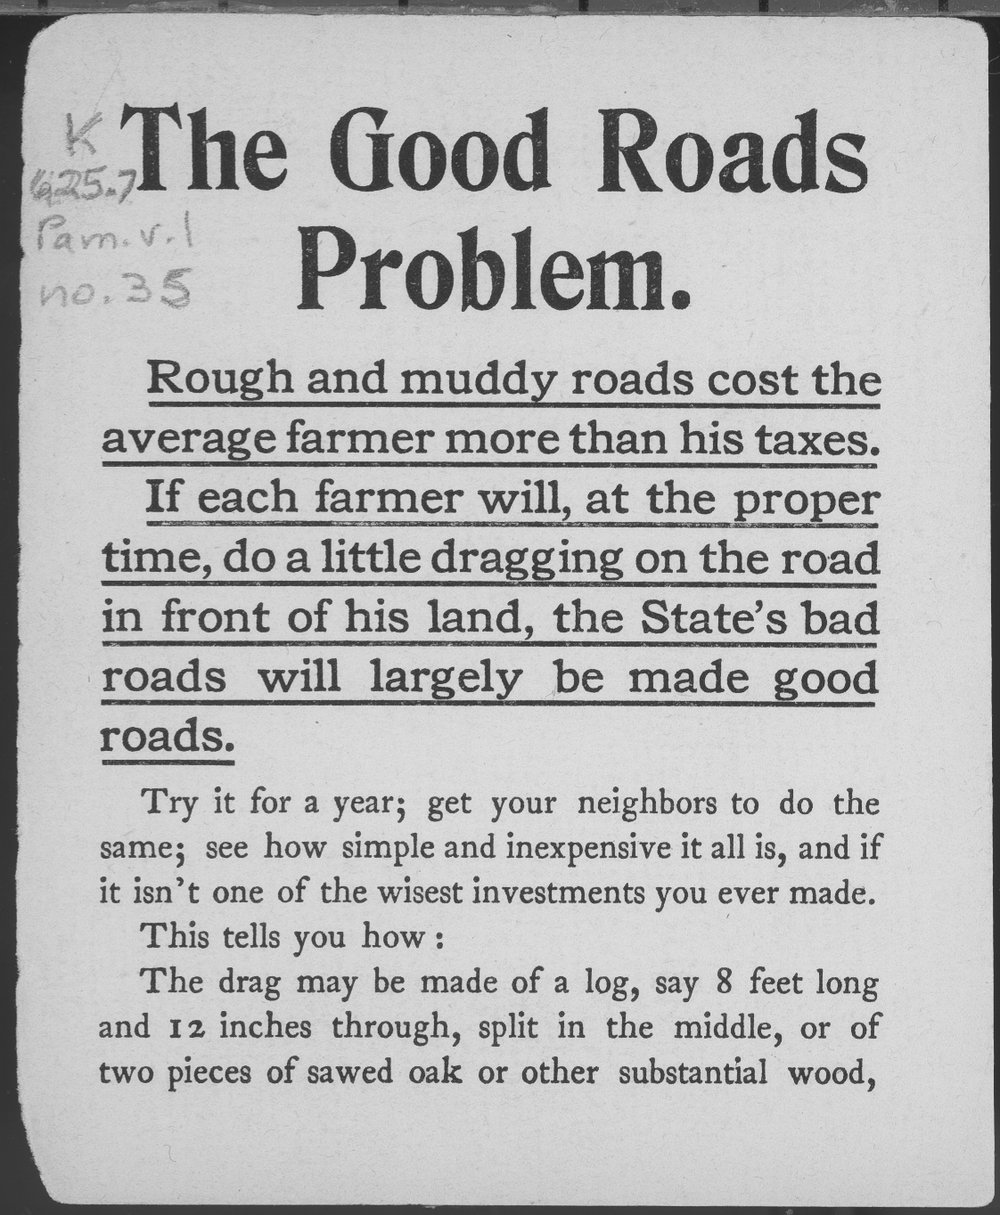 The good roads problem - 1